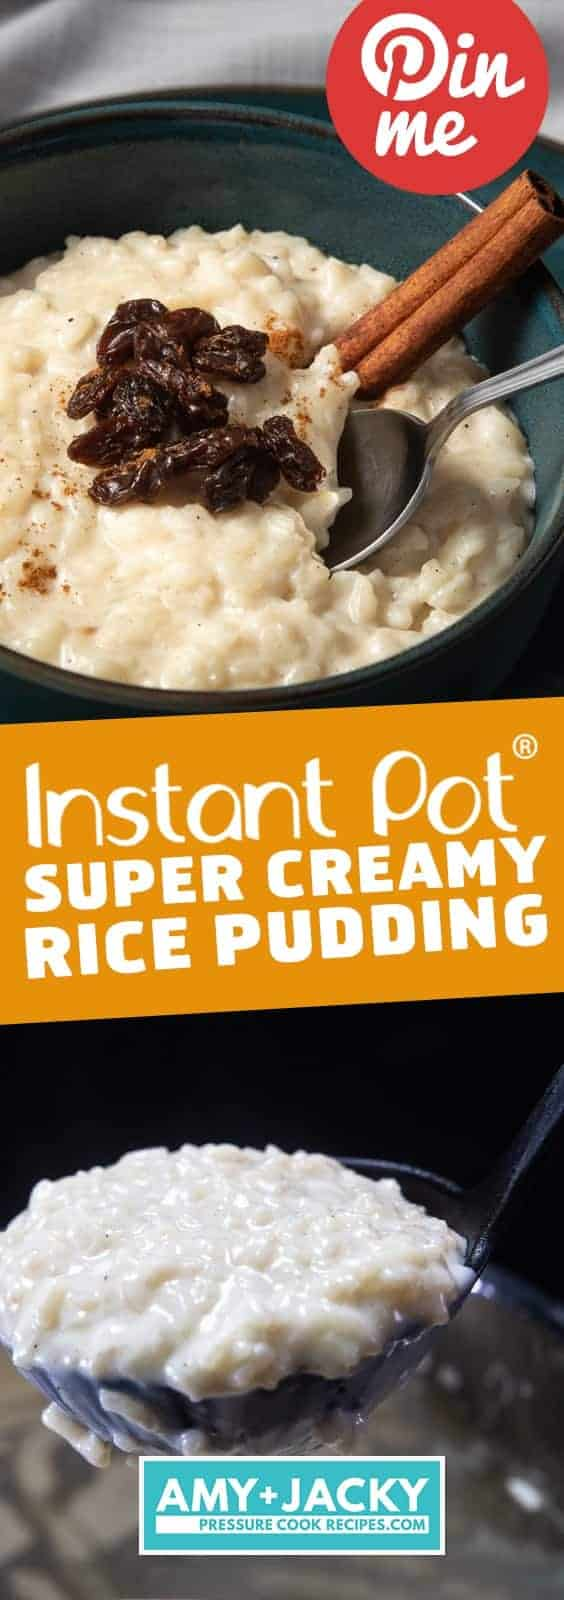 Instant Pot Rice Pudding | Pressure Cooker Rice Pudding | Instapot Rice Pudding | Easy Rice Pudding | Instant Pot Recipes | Pressure Cooker Recipes | Rice Recipes | Instant Pot Dessert #instantpot #recipes #easy #dessert #sweet #pressurecooker